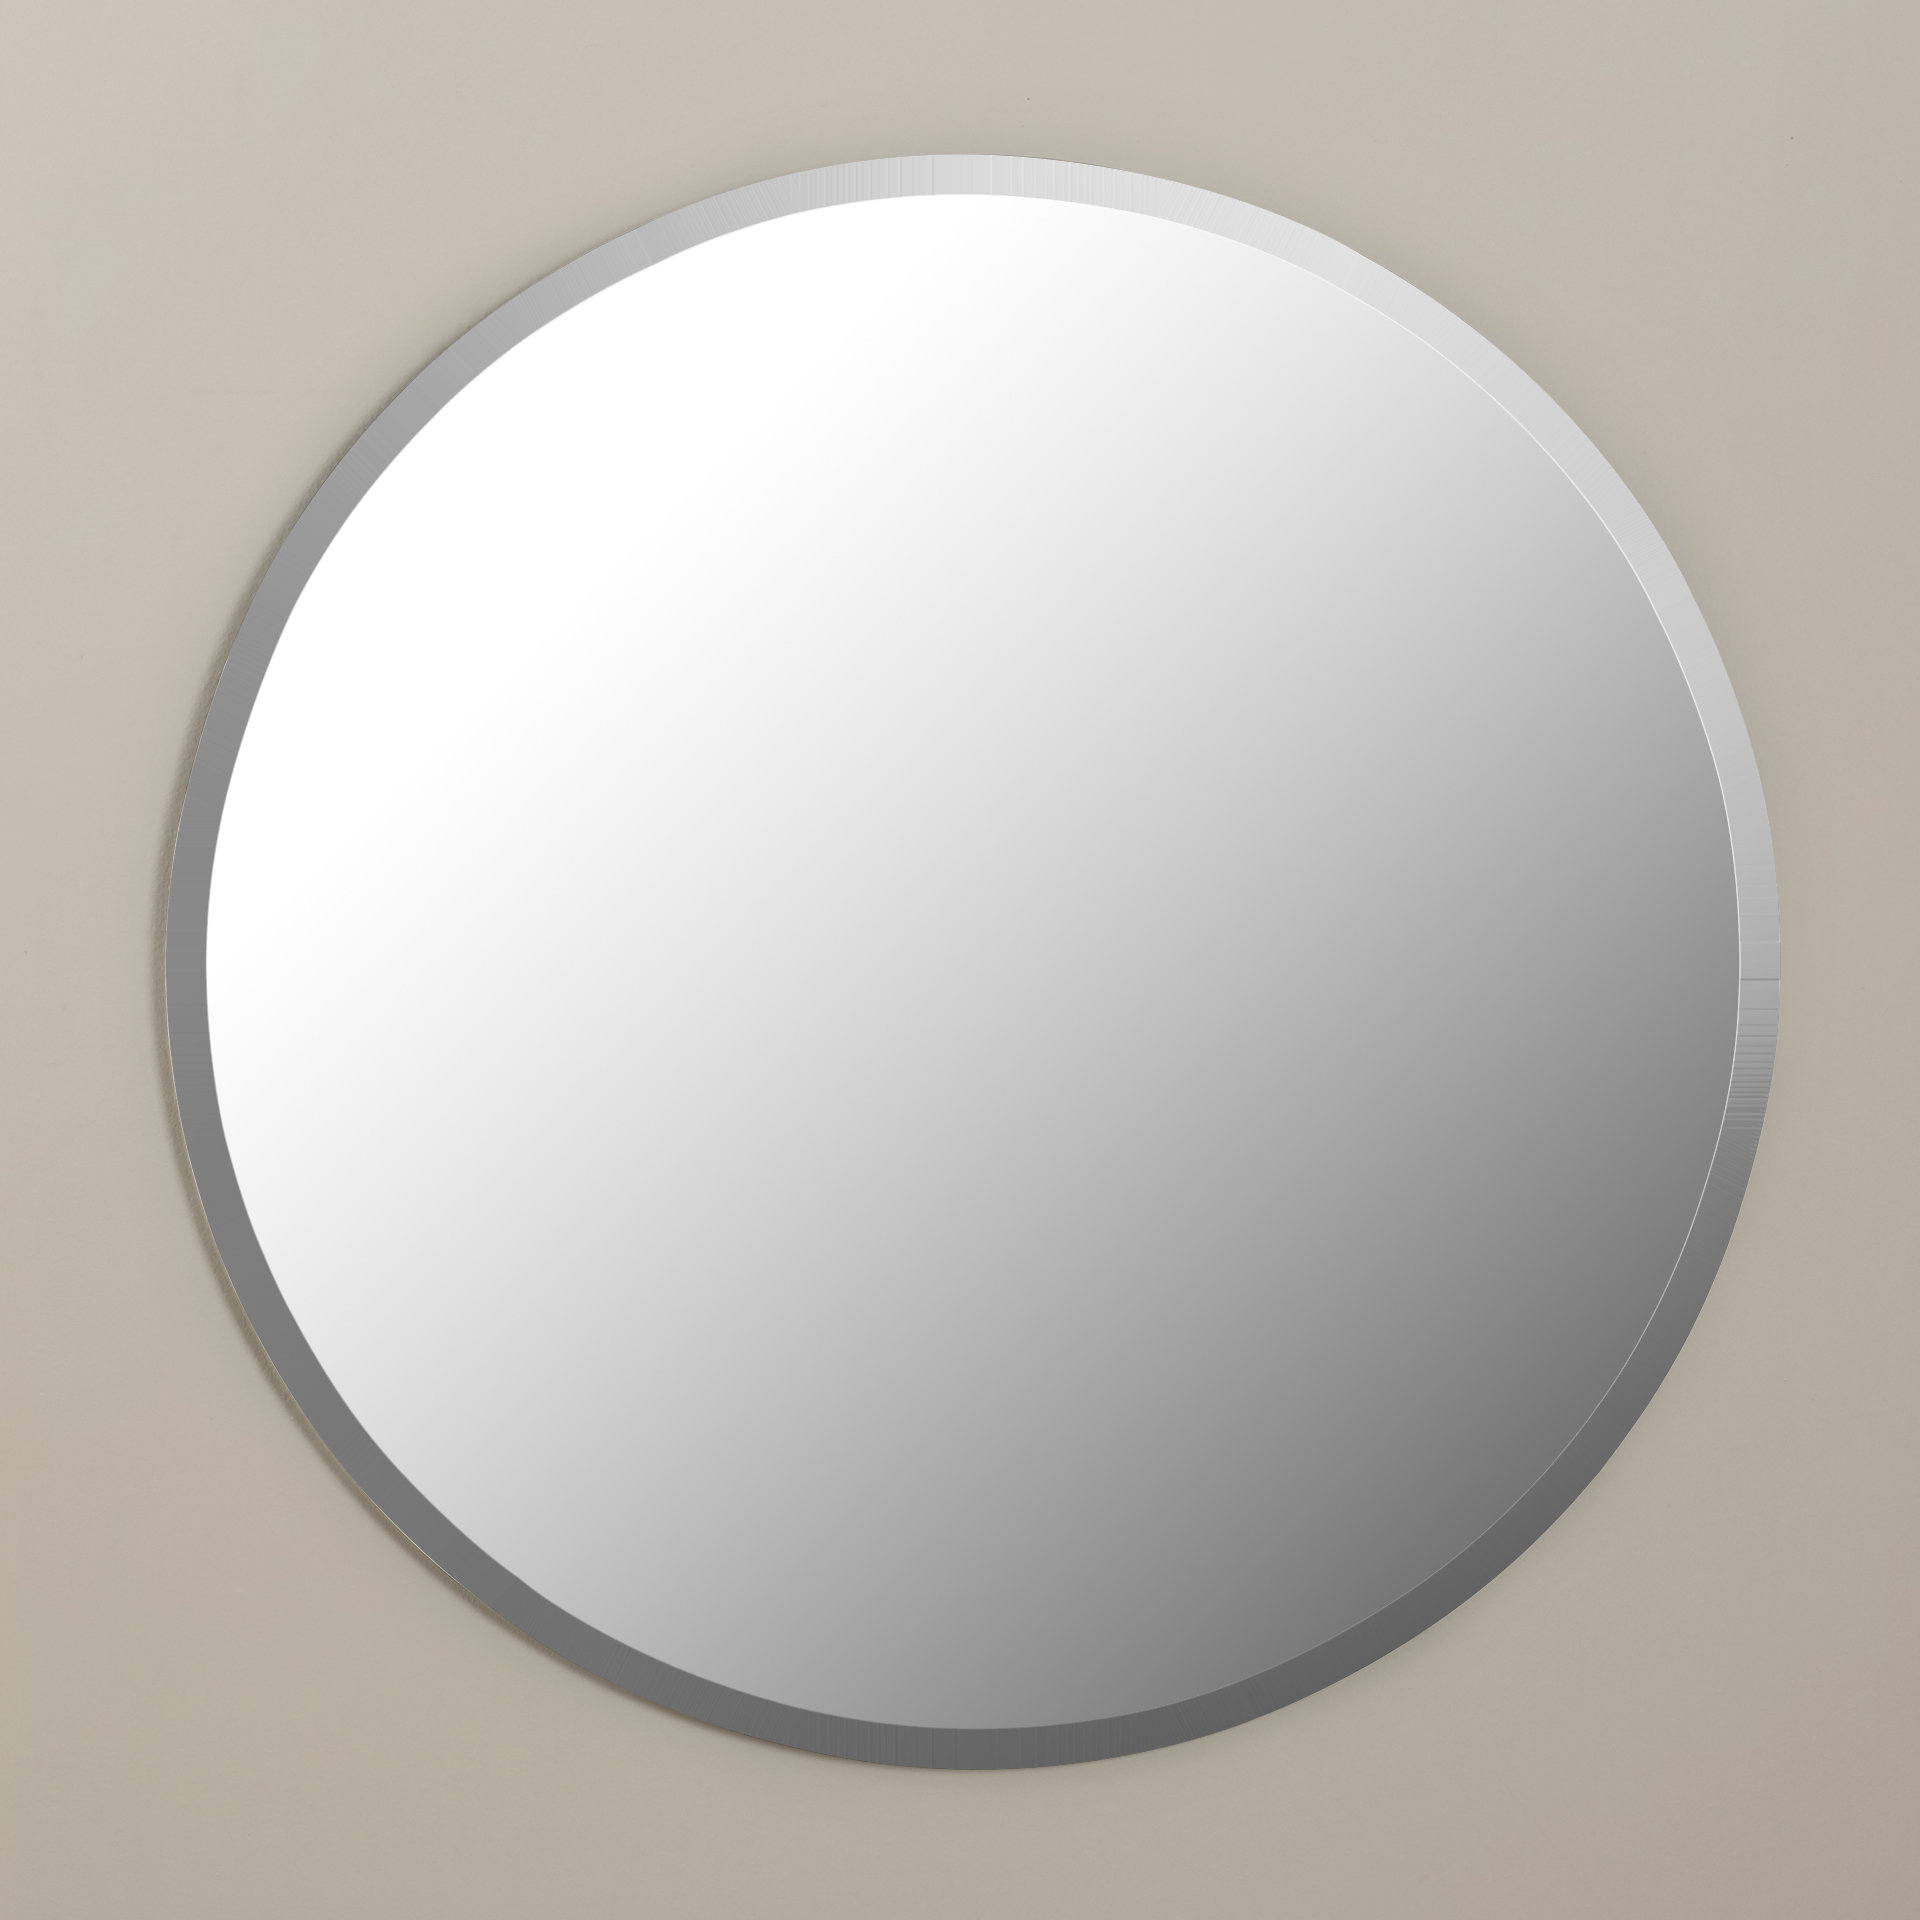 Kayden Accent Mirrors Intended For Favorite Kayden Accent Mirror (Gallery 2 of 20)